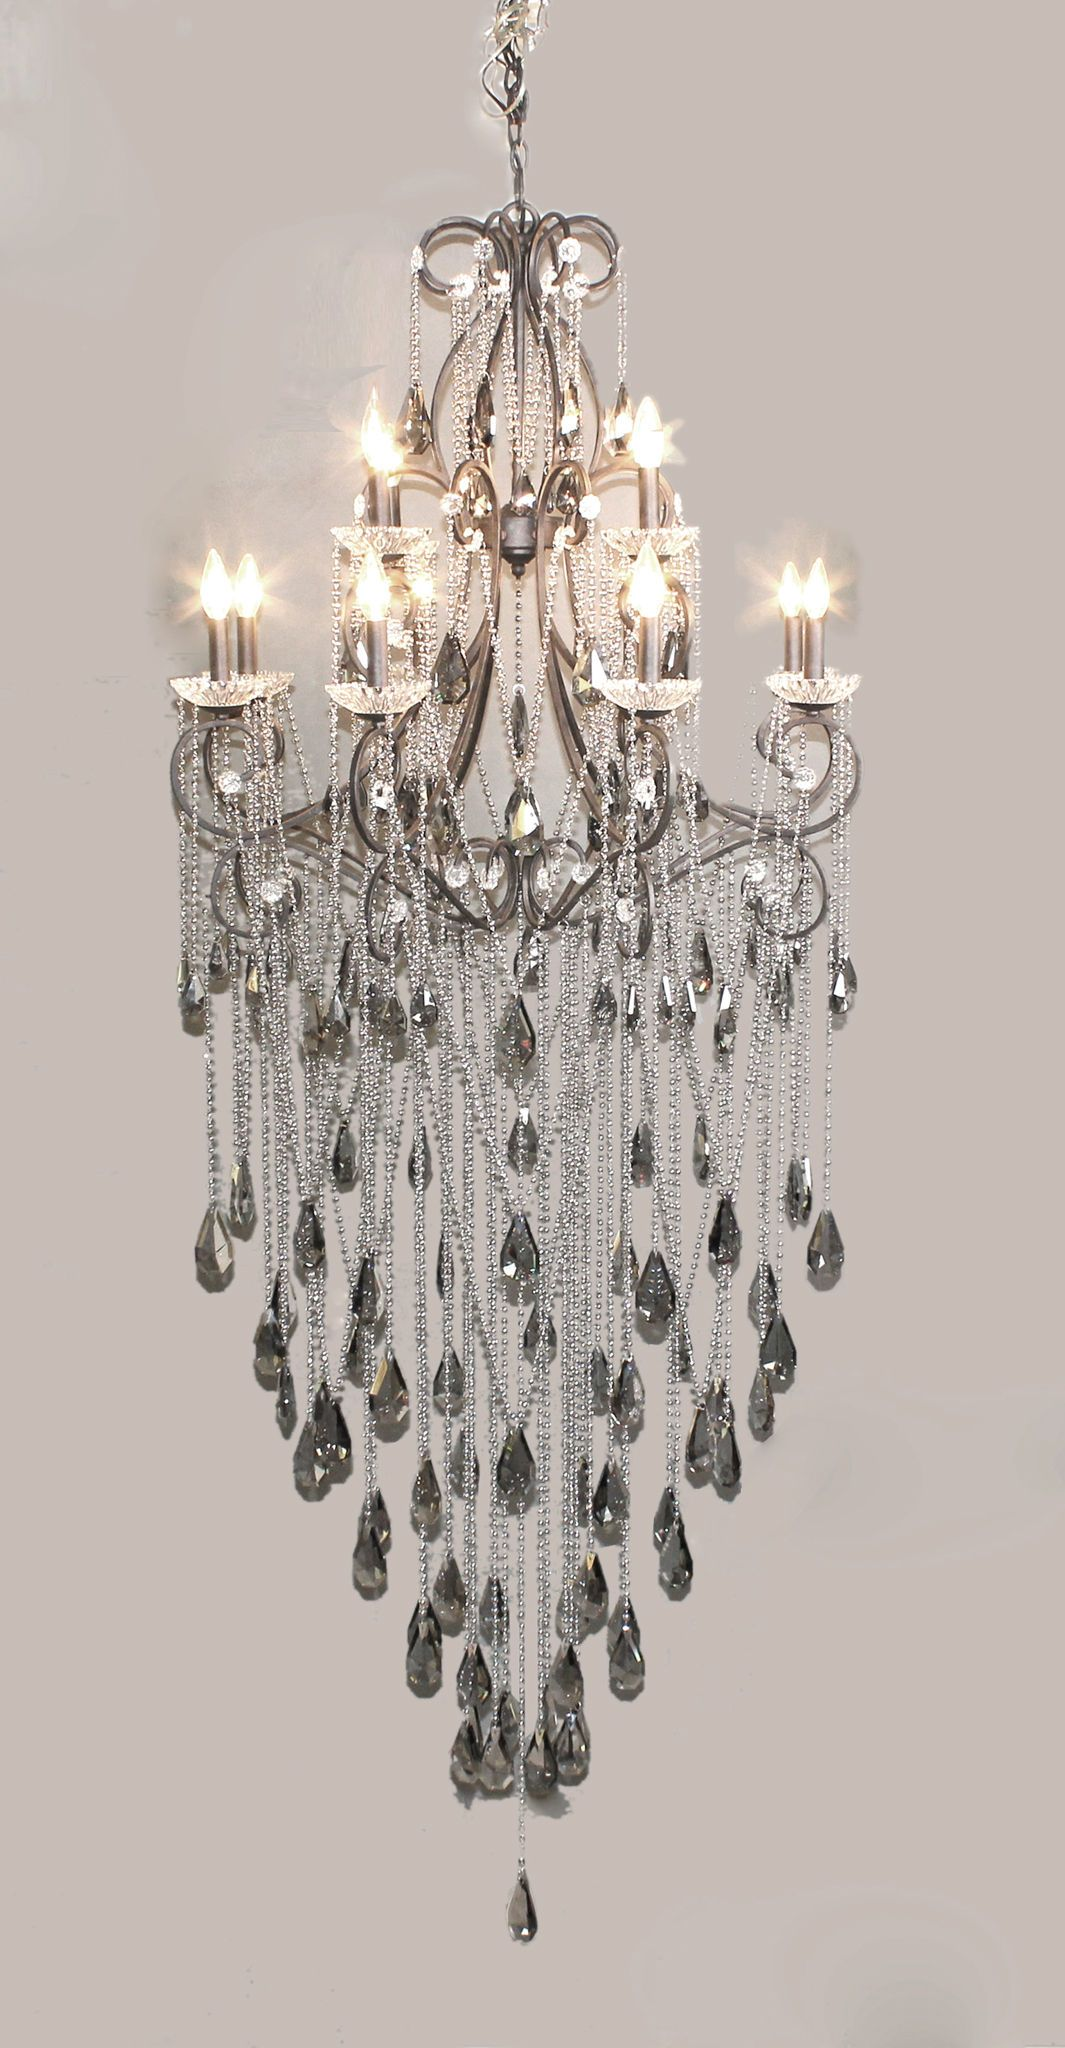 Home office charlotte 12 light chandelier smoked cird y9 b2 home office charlotte 12 light chandelier smoked cird y9 arubaitofo Image collections